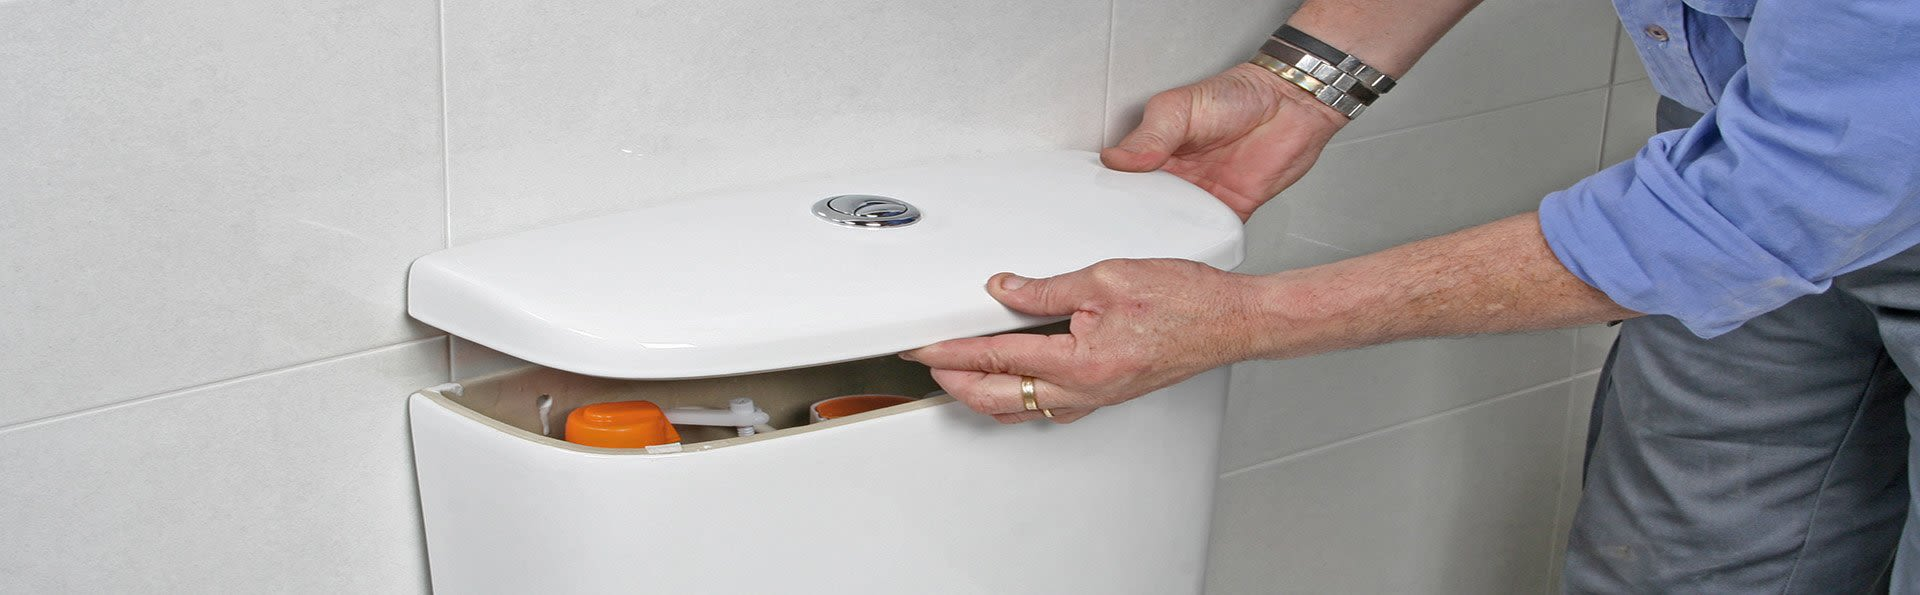 Professional plumbing & Heating services, local to Cricklewood